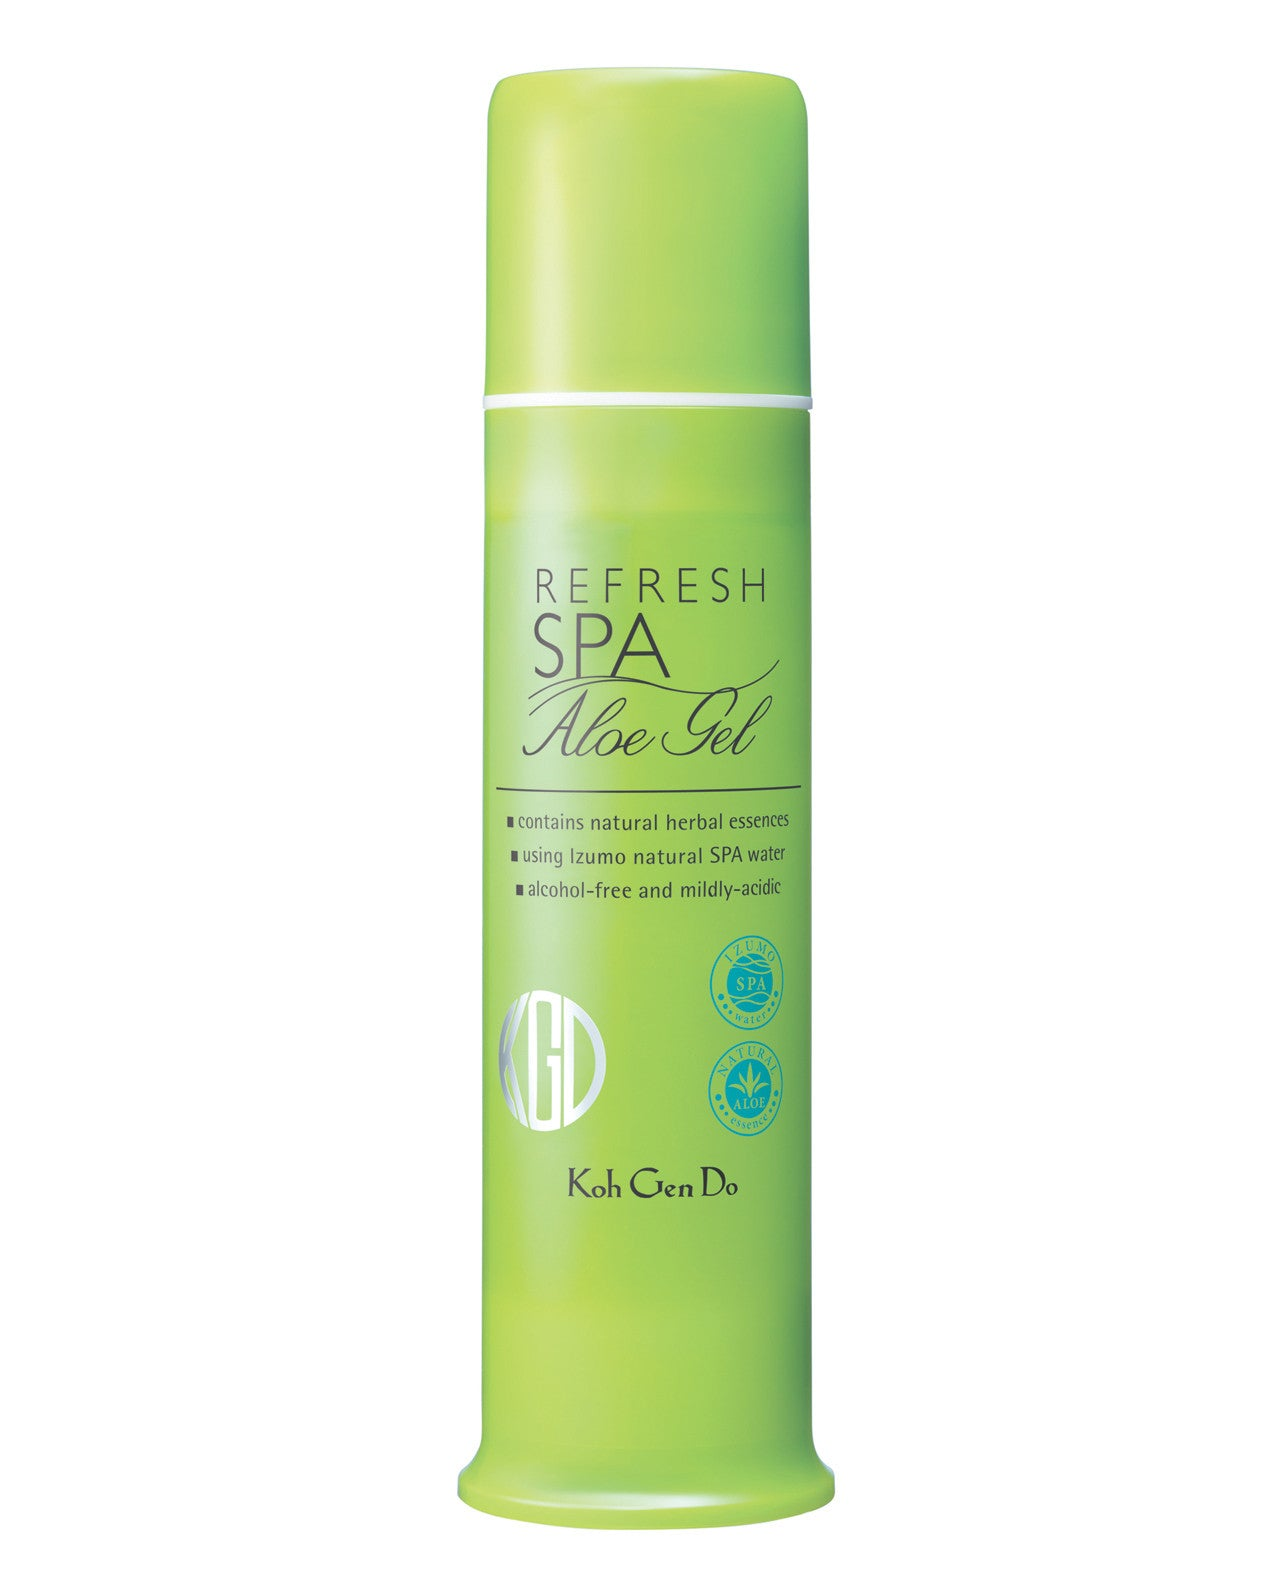 This lightweight, water-based gel calms, cools, and smooths skin texture in a single step.